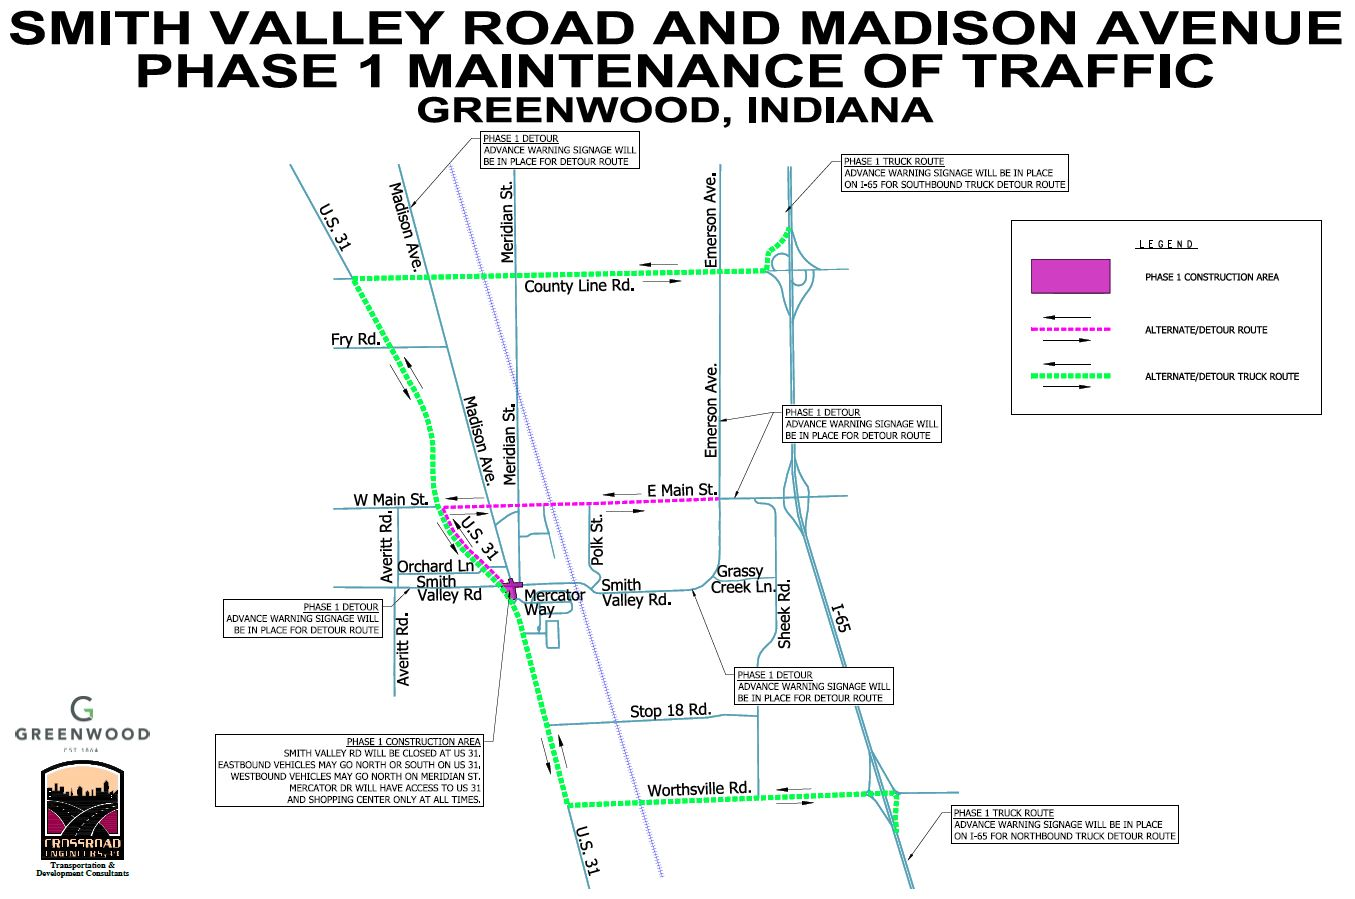 Smith Valley Road/Madison Avenue Phase 1 – Detour Route